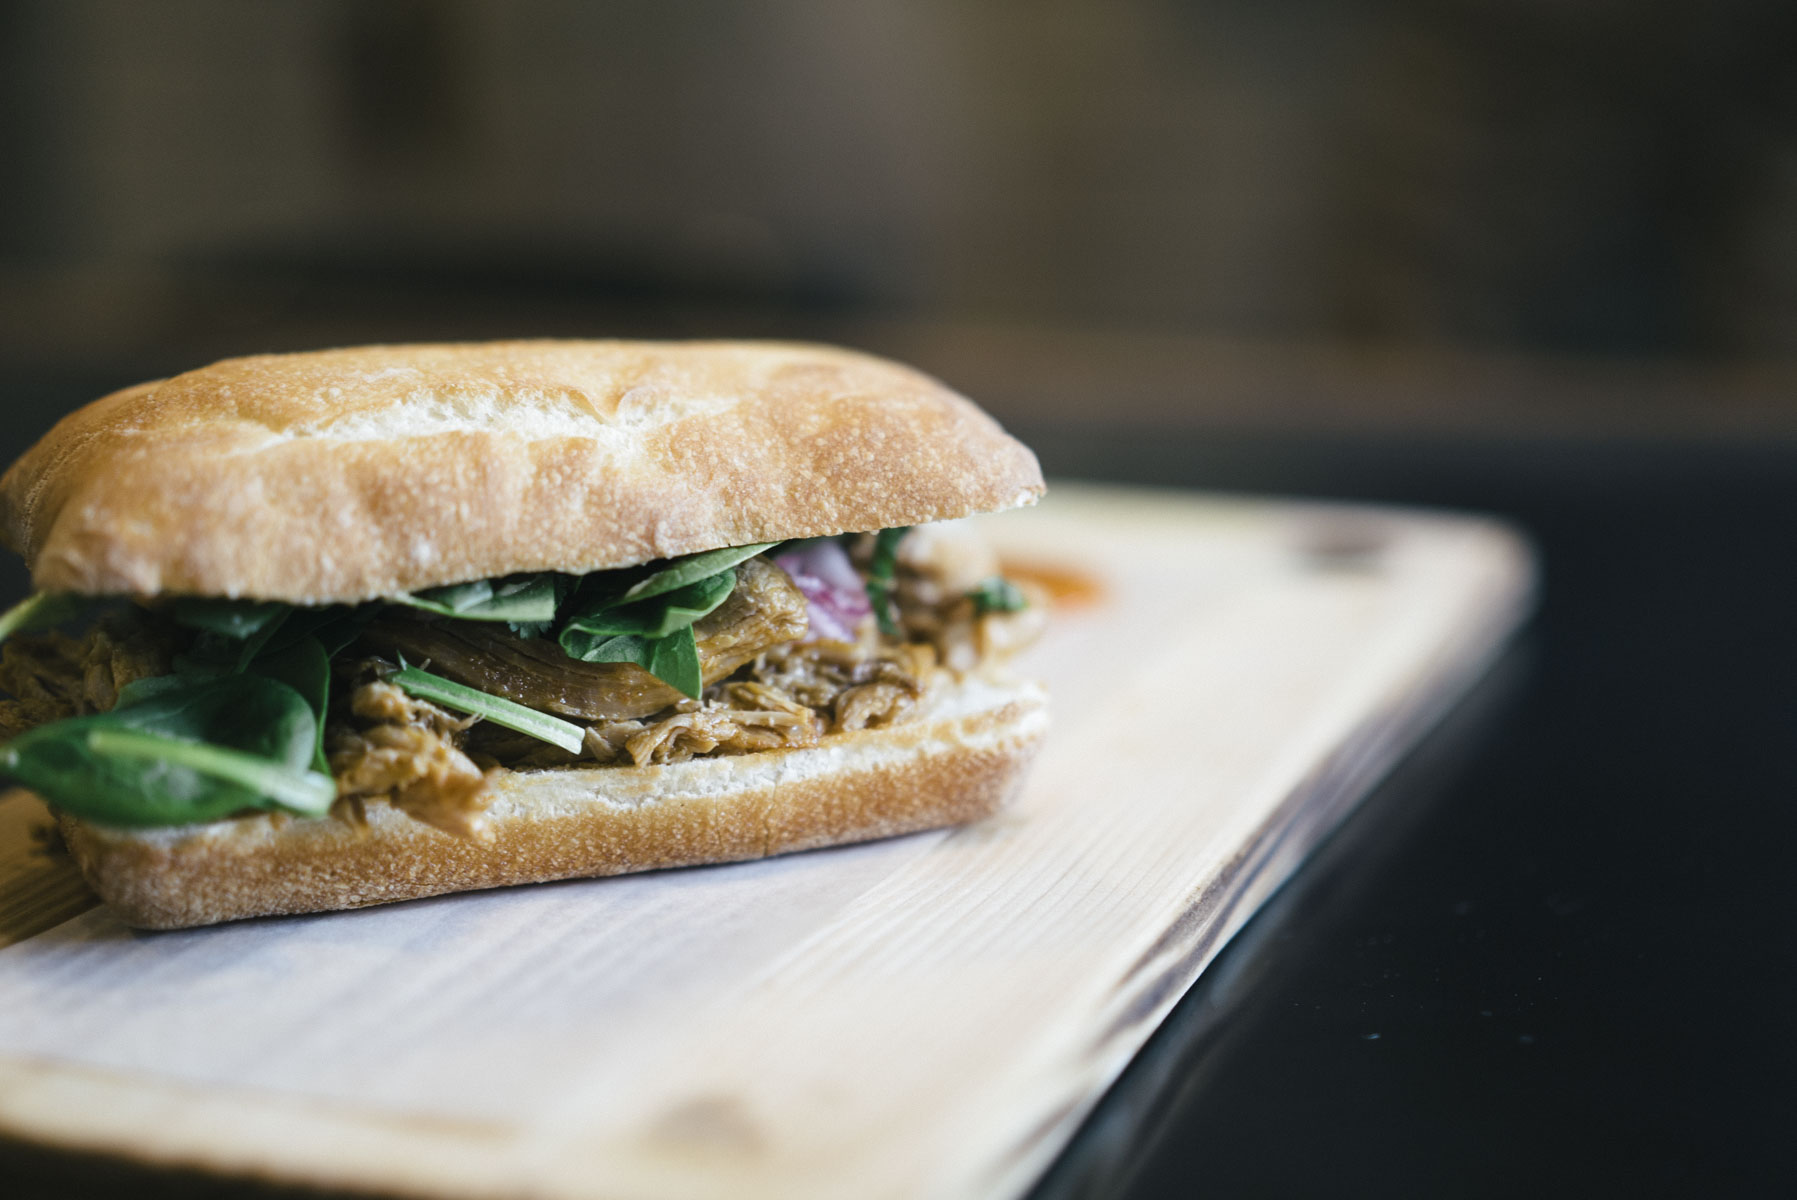 meat-and-bread-porchetta-sandwich-meatball-vancouver-cambie-pender-seattle-4